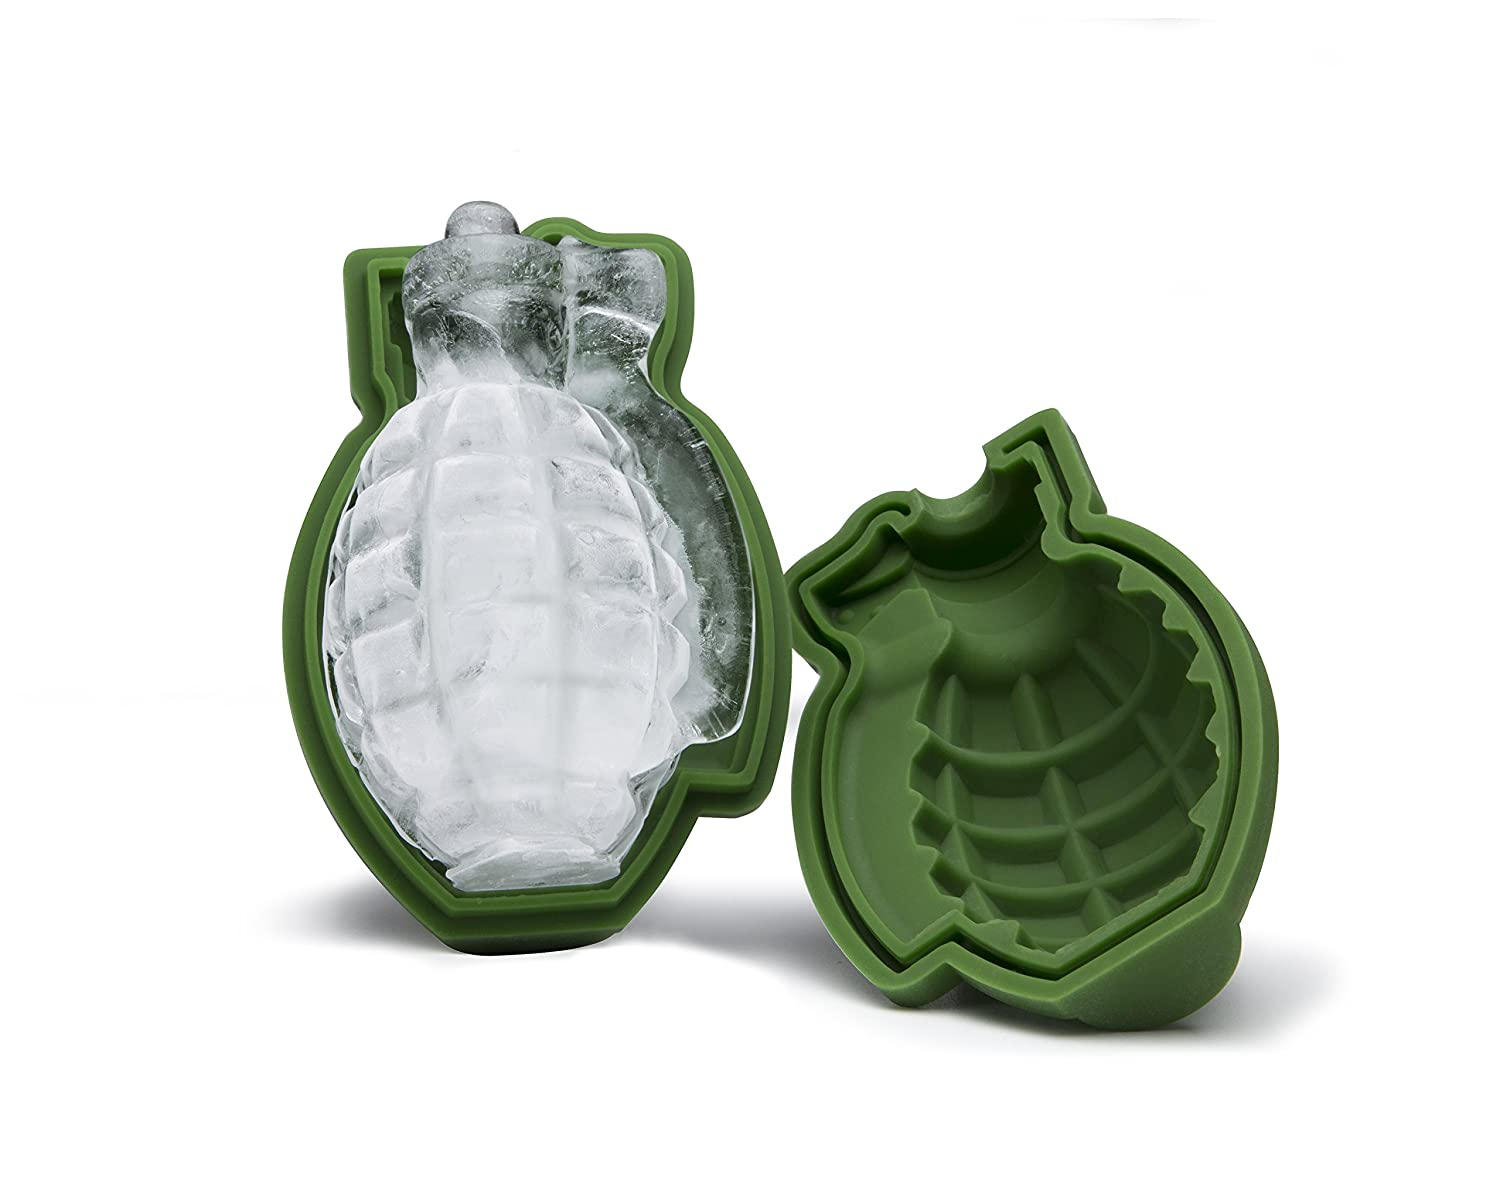 3D Grenade Ice Cube Mold, Silicone Ice Mold, A Great Mens Gift